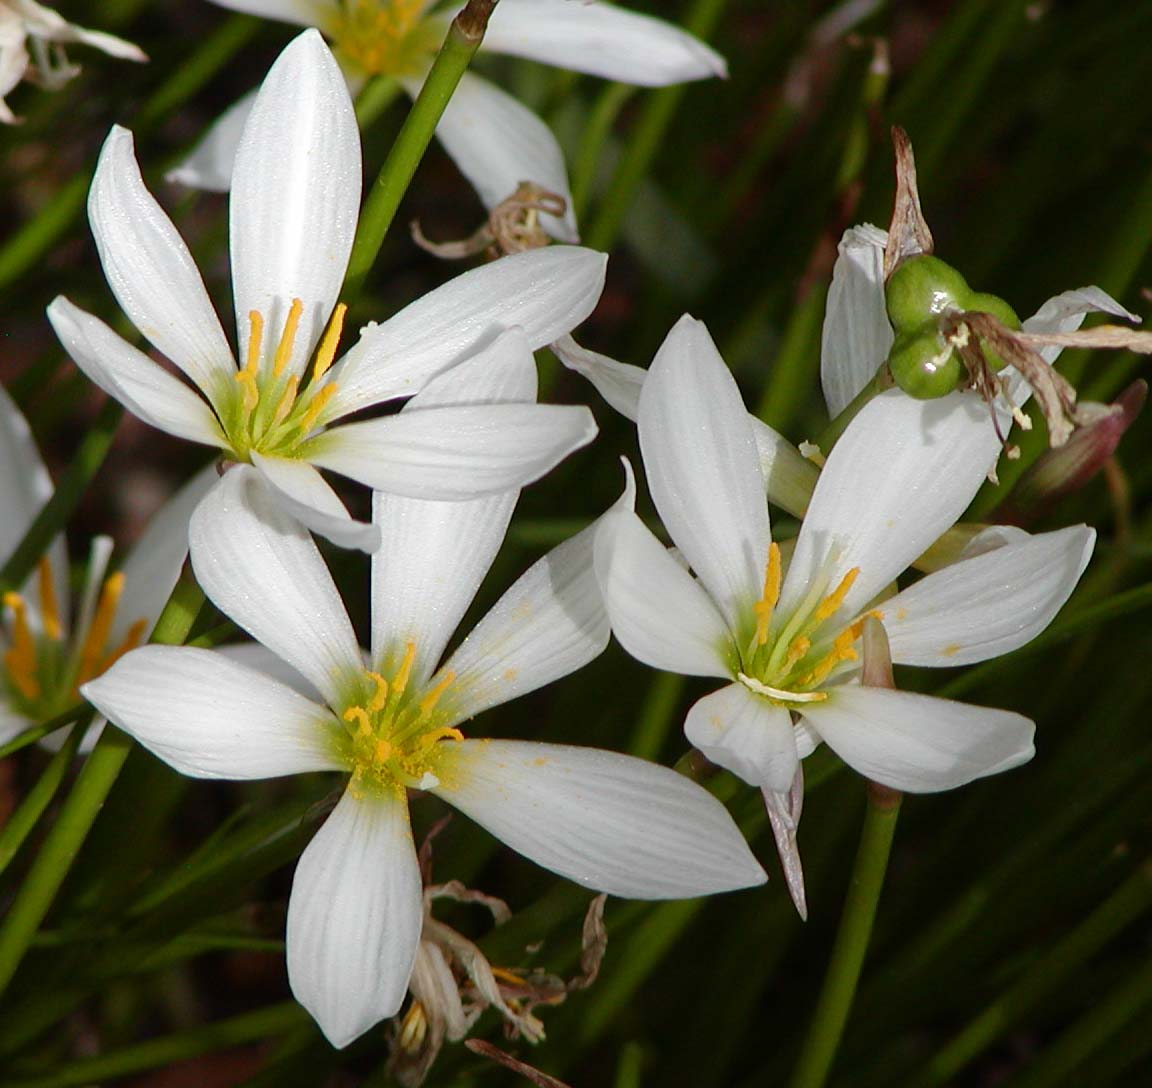 Zephyranthes Wikipedia